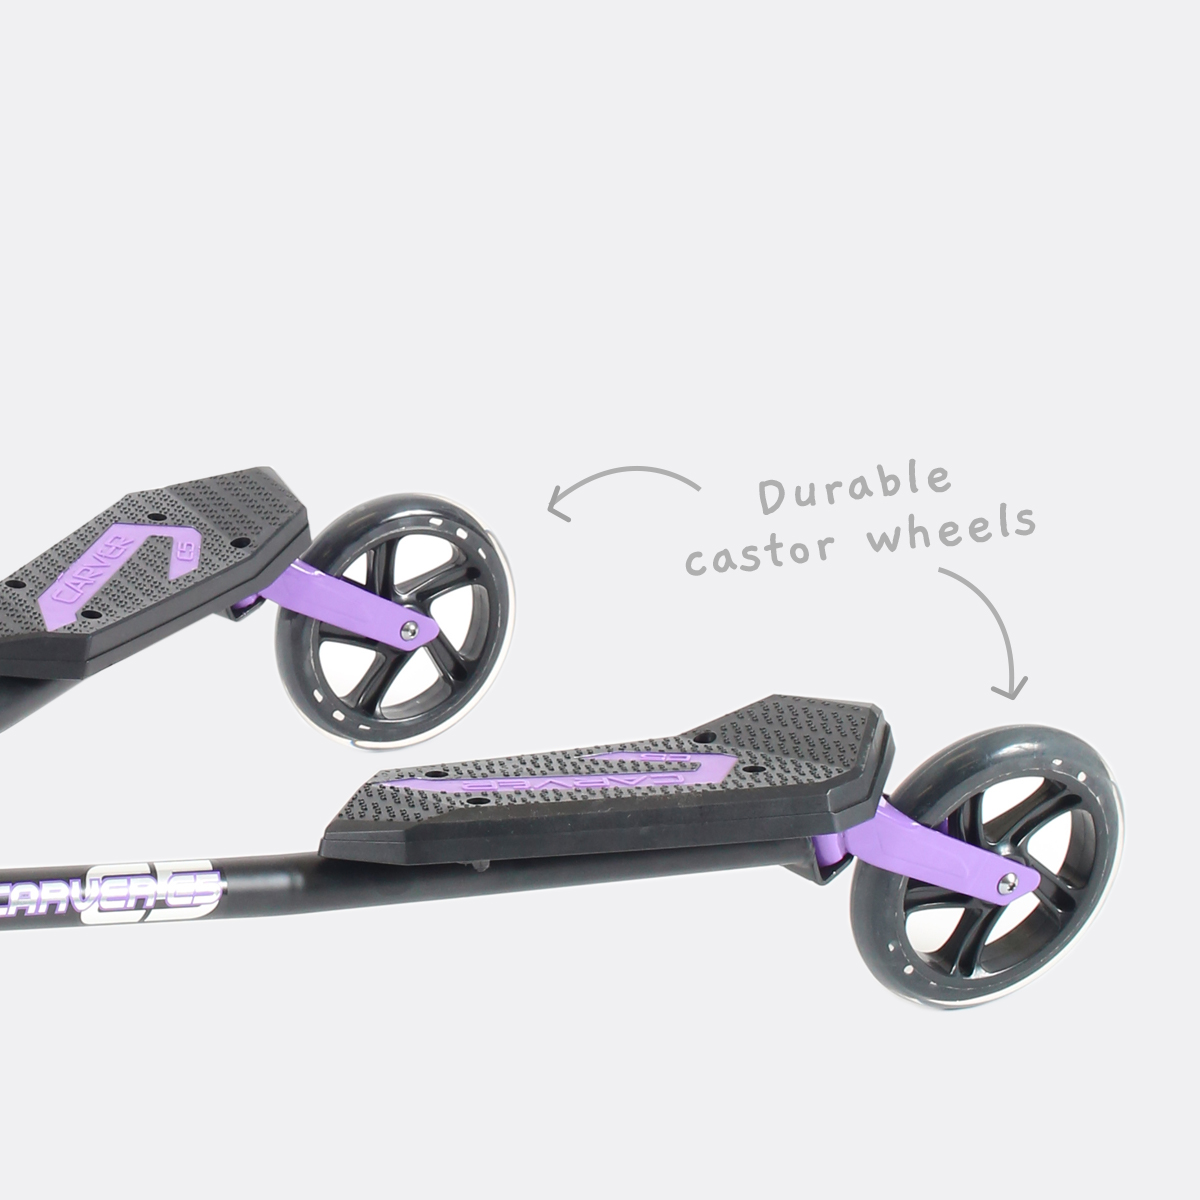 Durable castor wheels